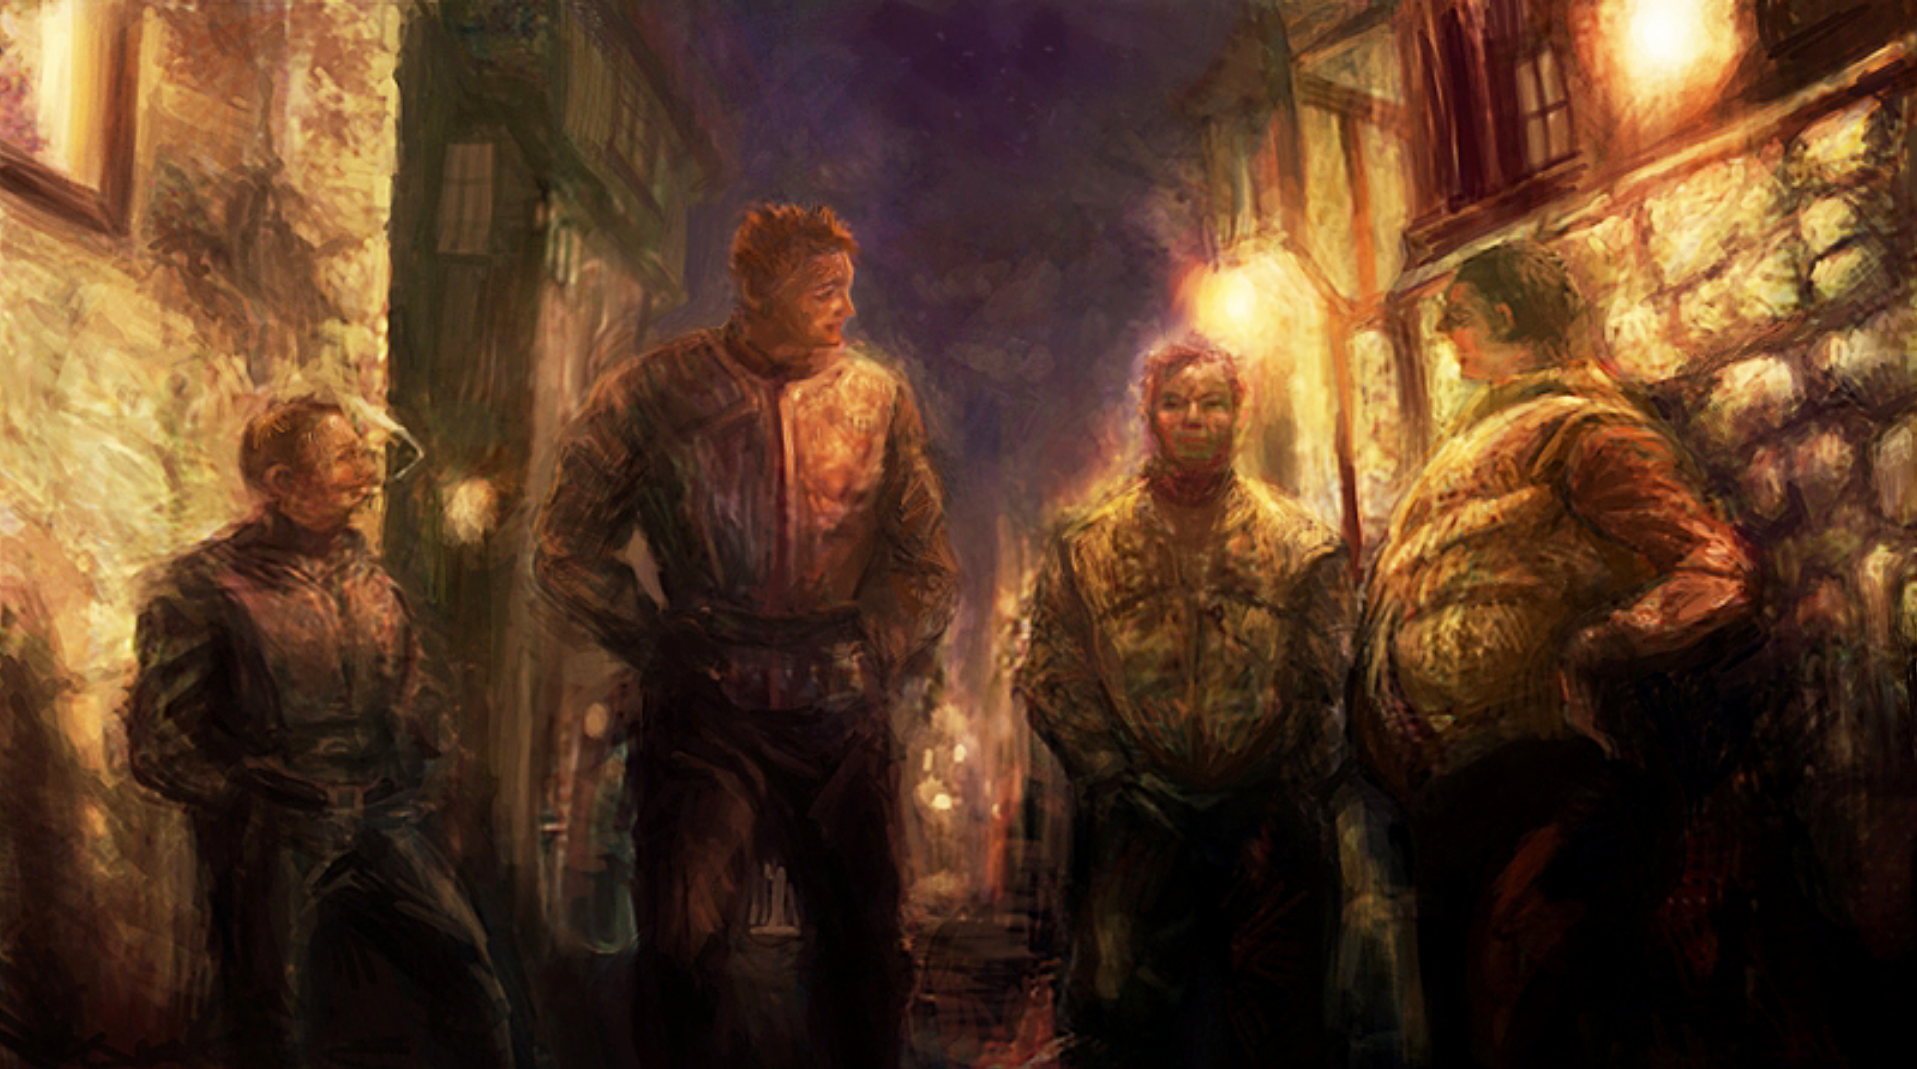 """Guards"" by Kairosis on DeviantArt depicting Nobby, Carrot, Vimes, and Colon from Discworld."